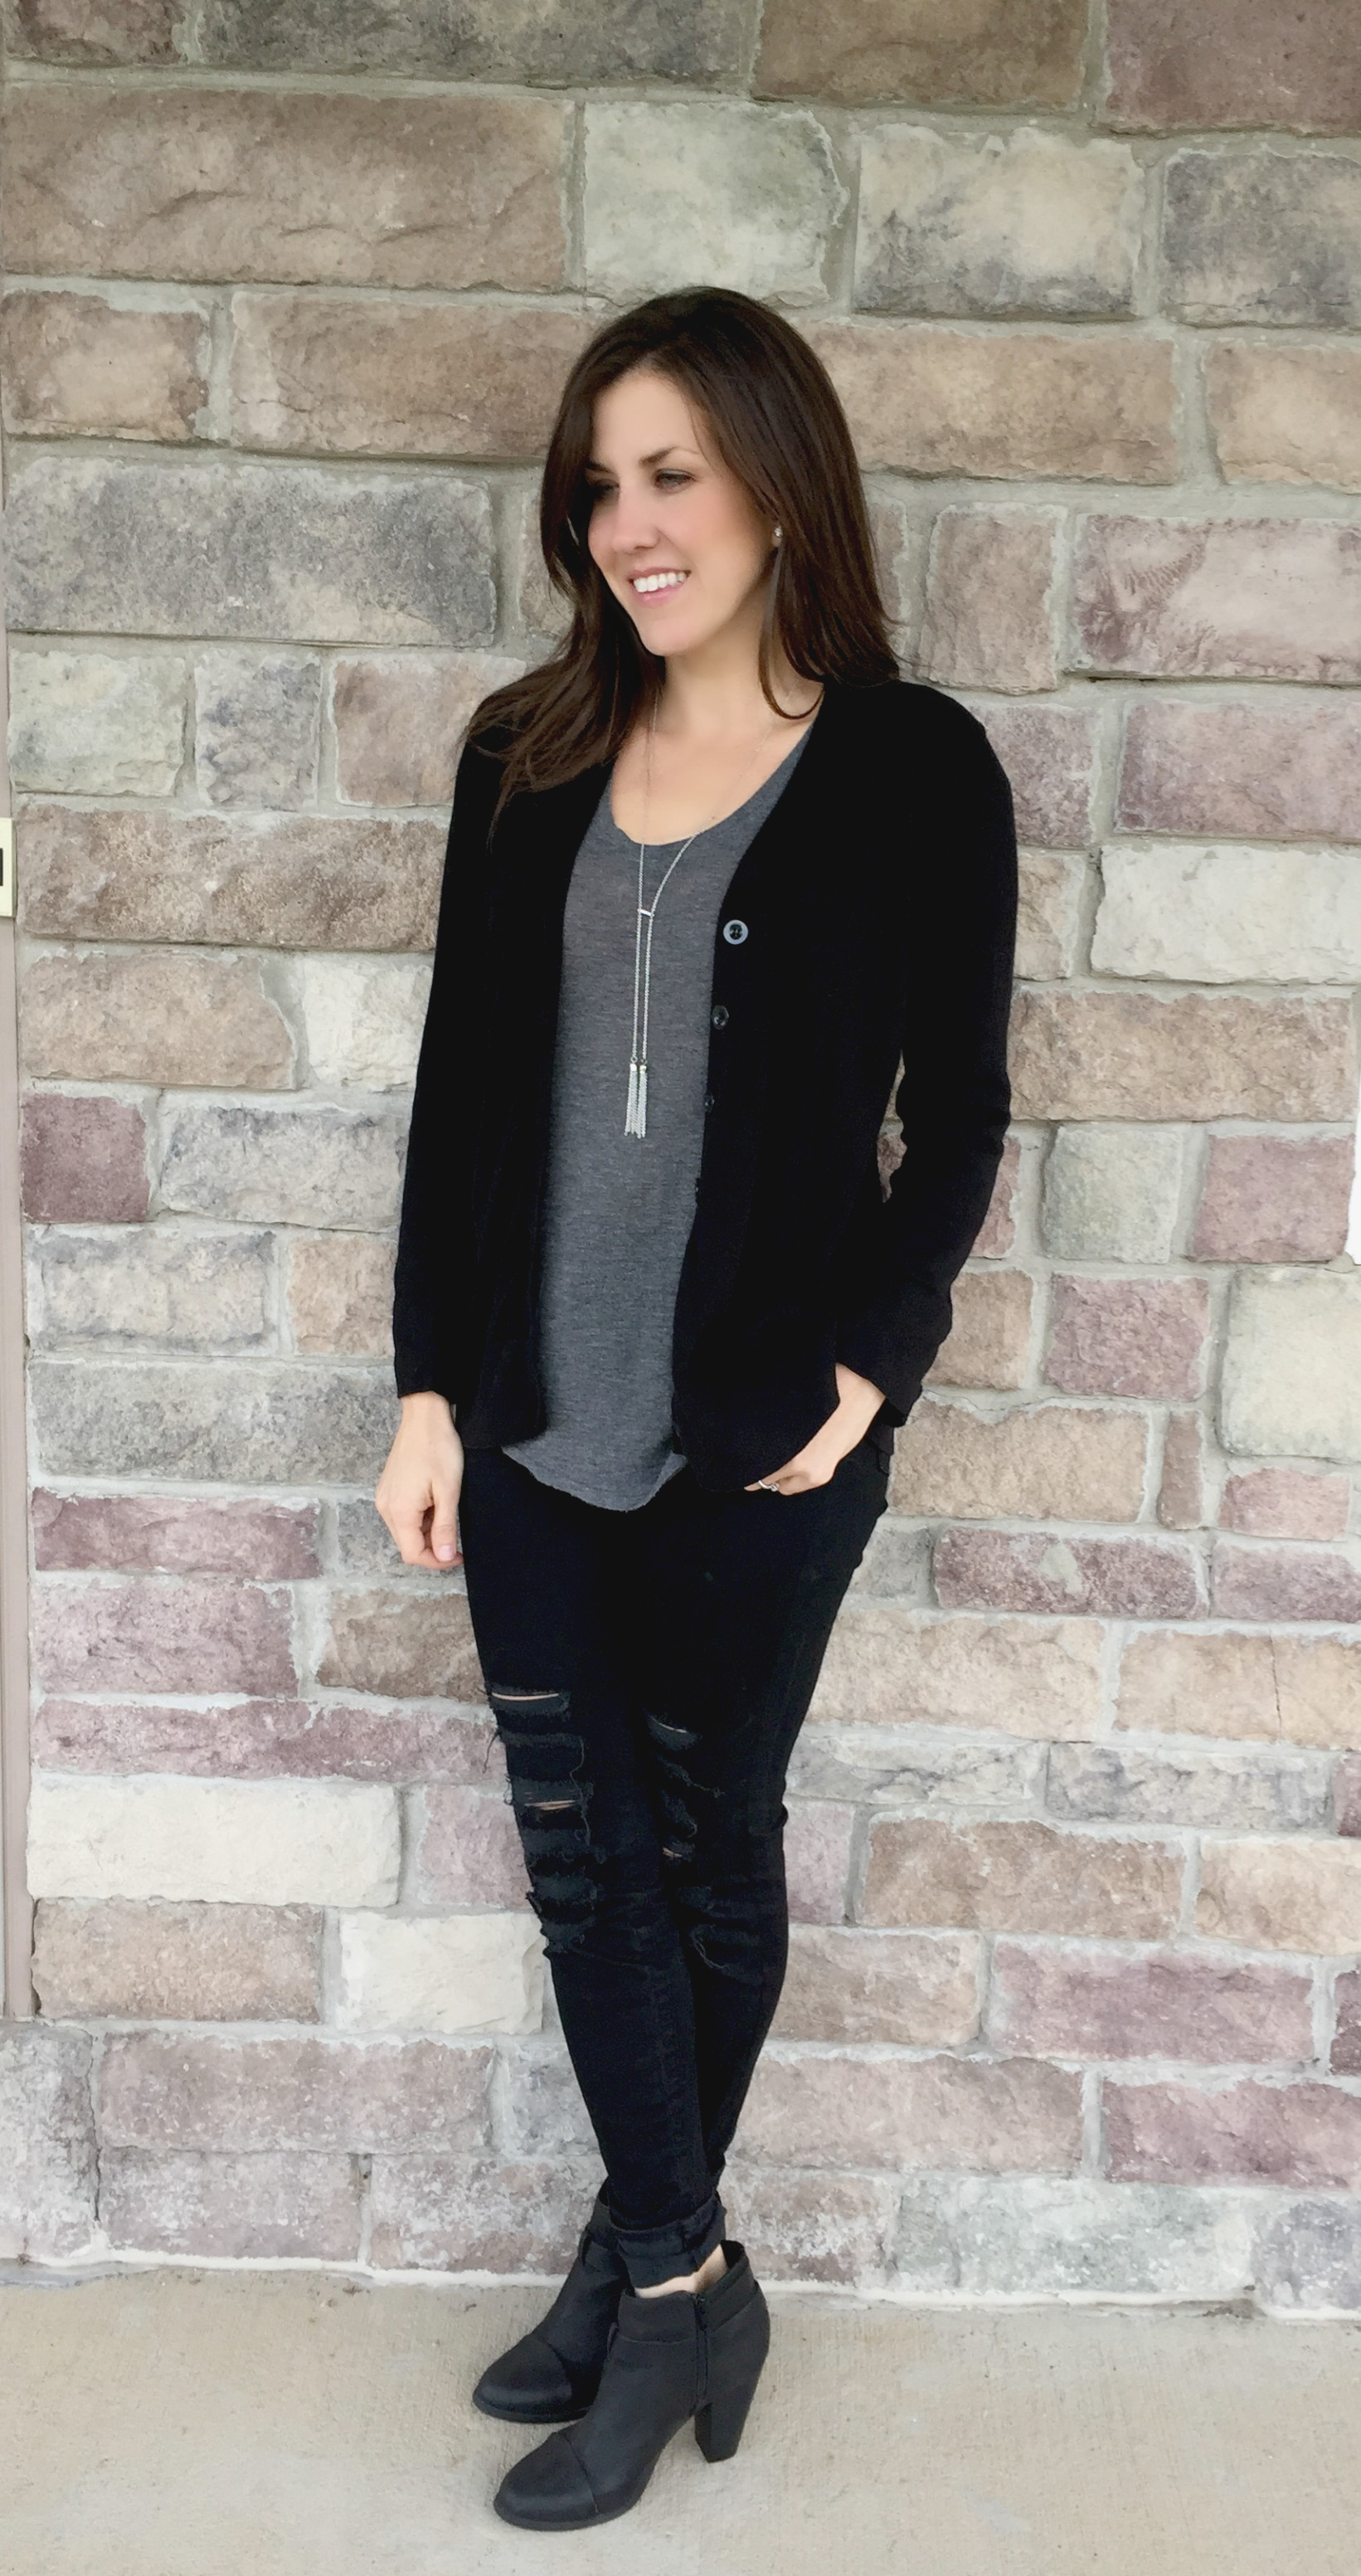 Black Boyfriend Cardigan Sweater Outfit - momma in flip flops